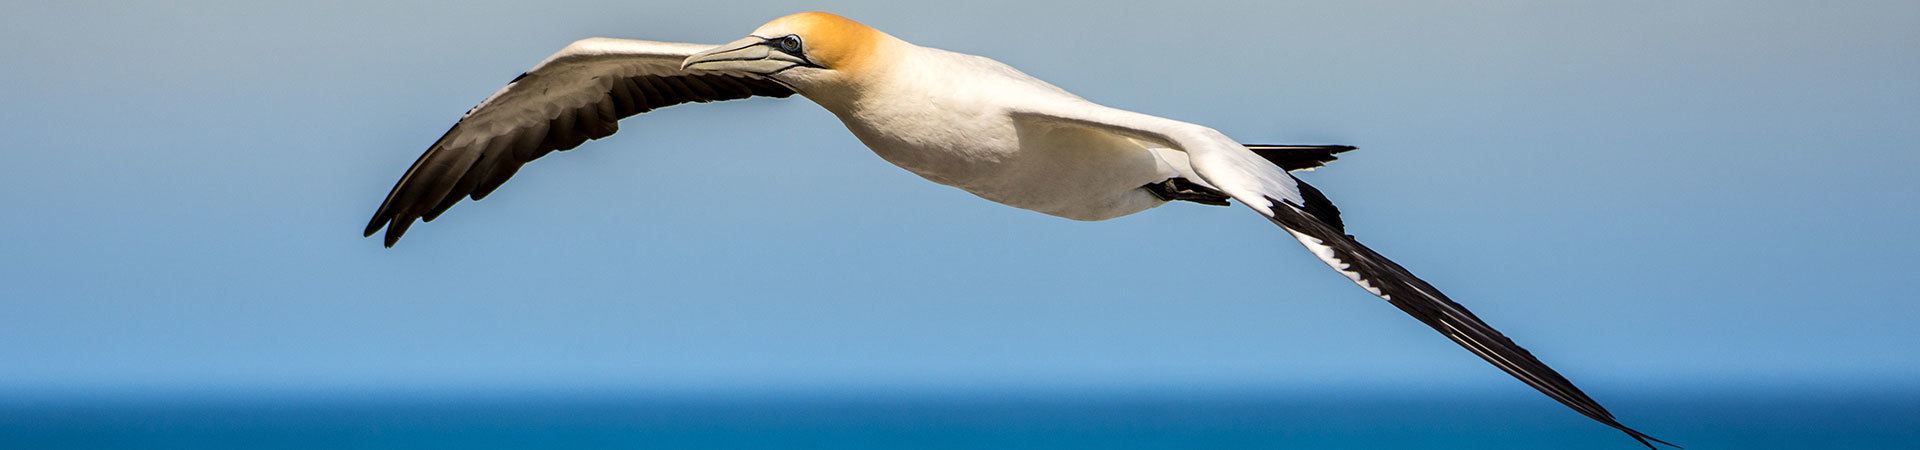 Gannet soaring in the sky off coast of New Zealand